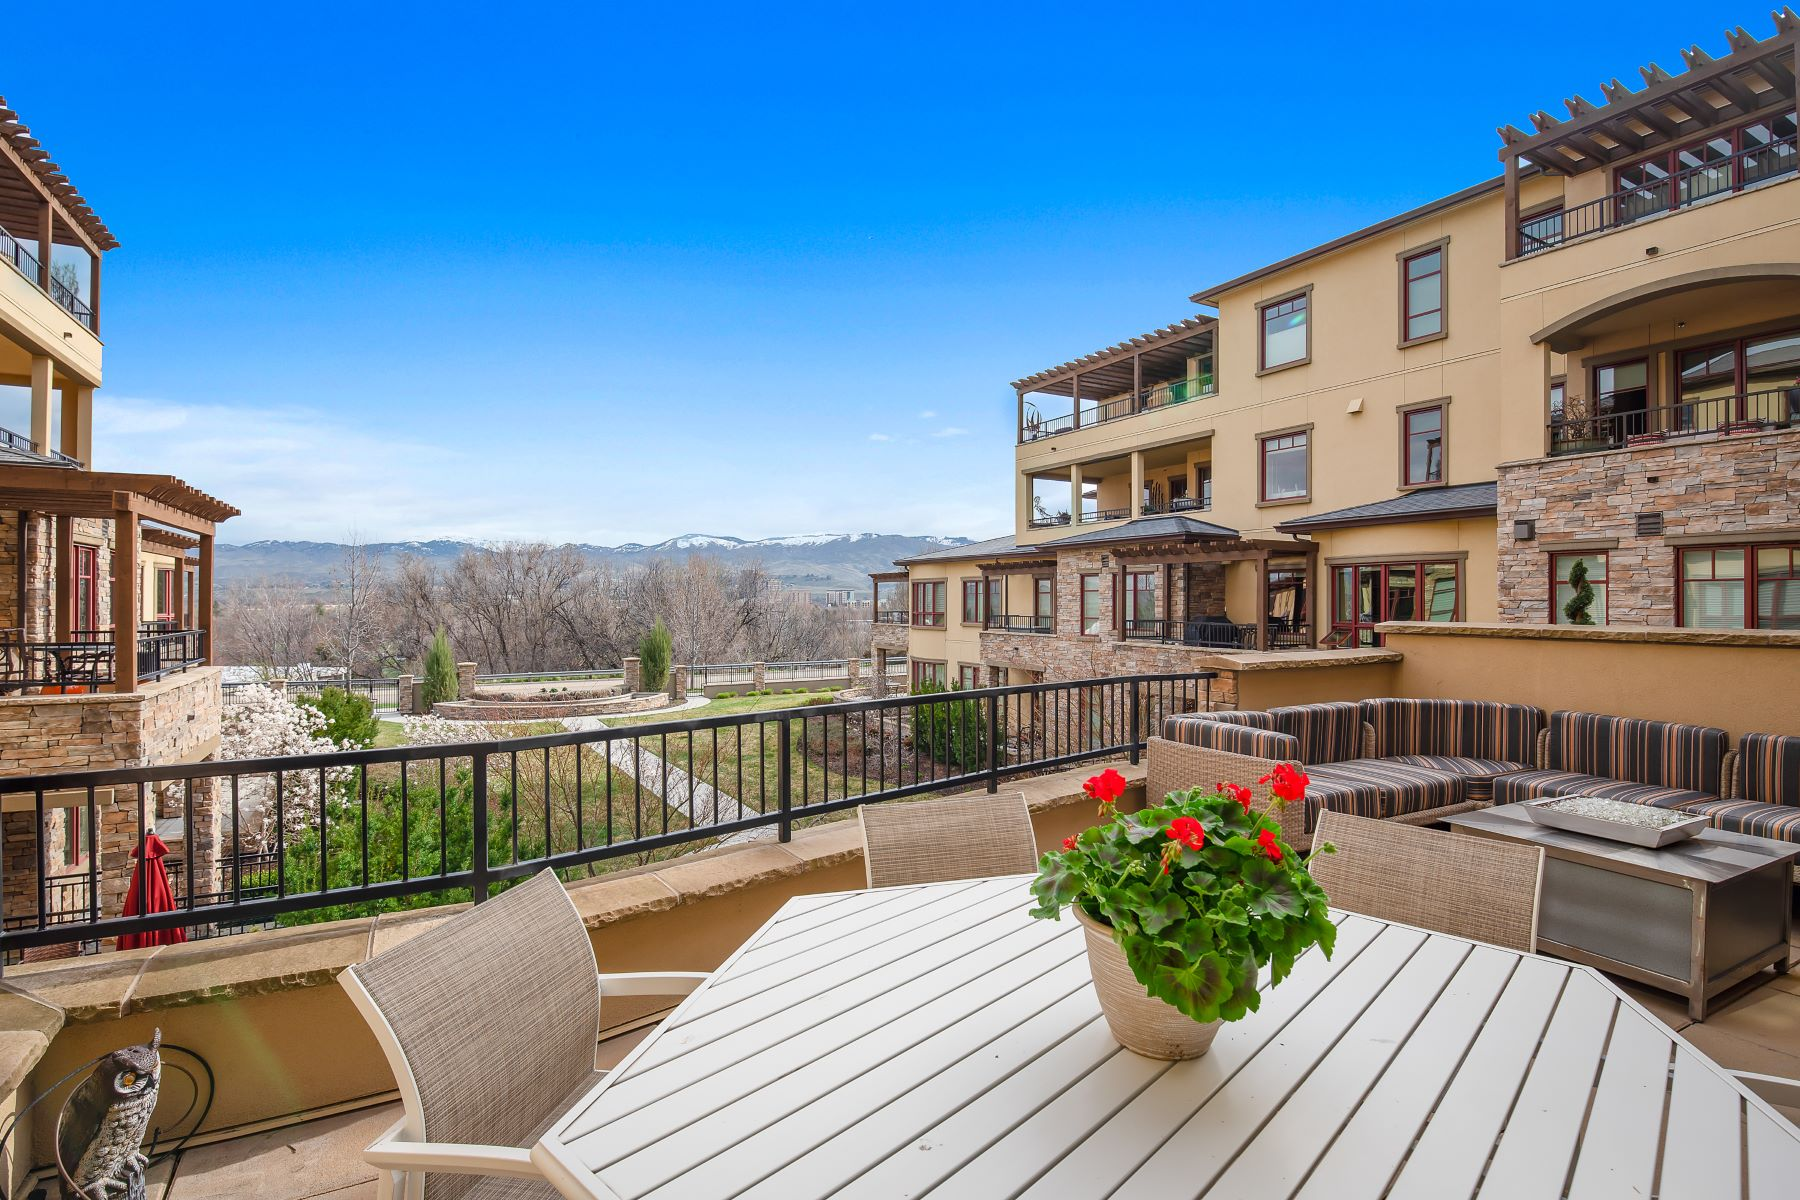 Condominiums for Sale at 3059 Crescent Rim Drive #207 207, Boise 3059 W Crescent Rim Drive #207 207 Boise, Idaho 83706 United States